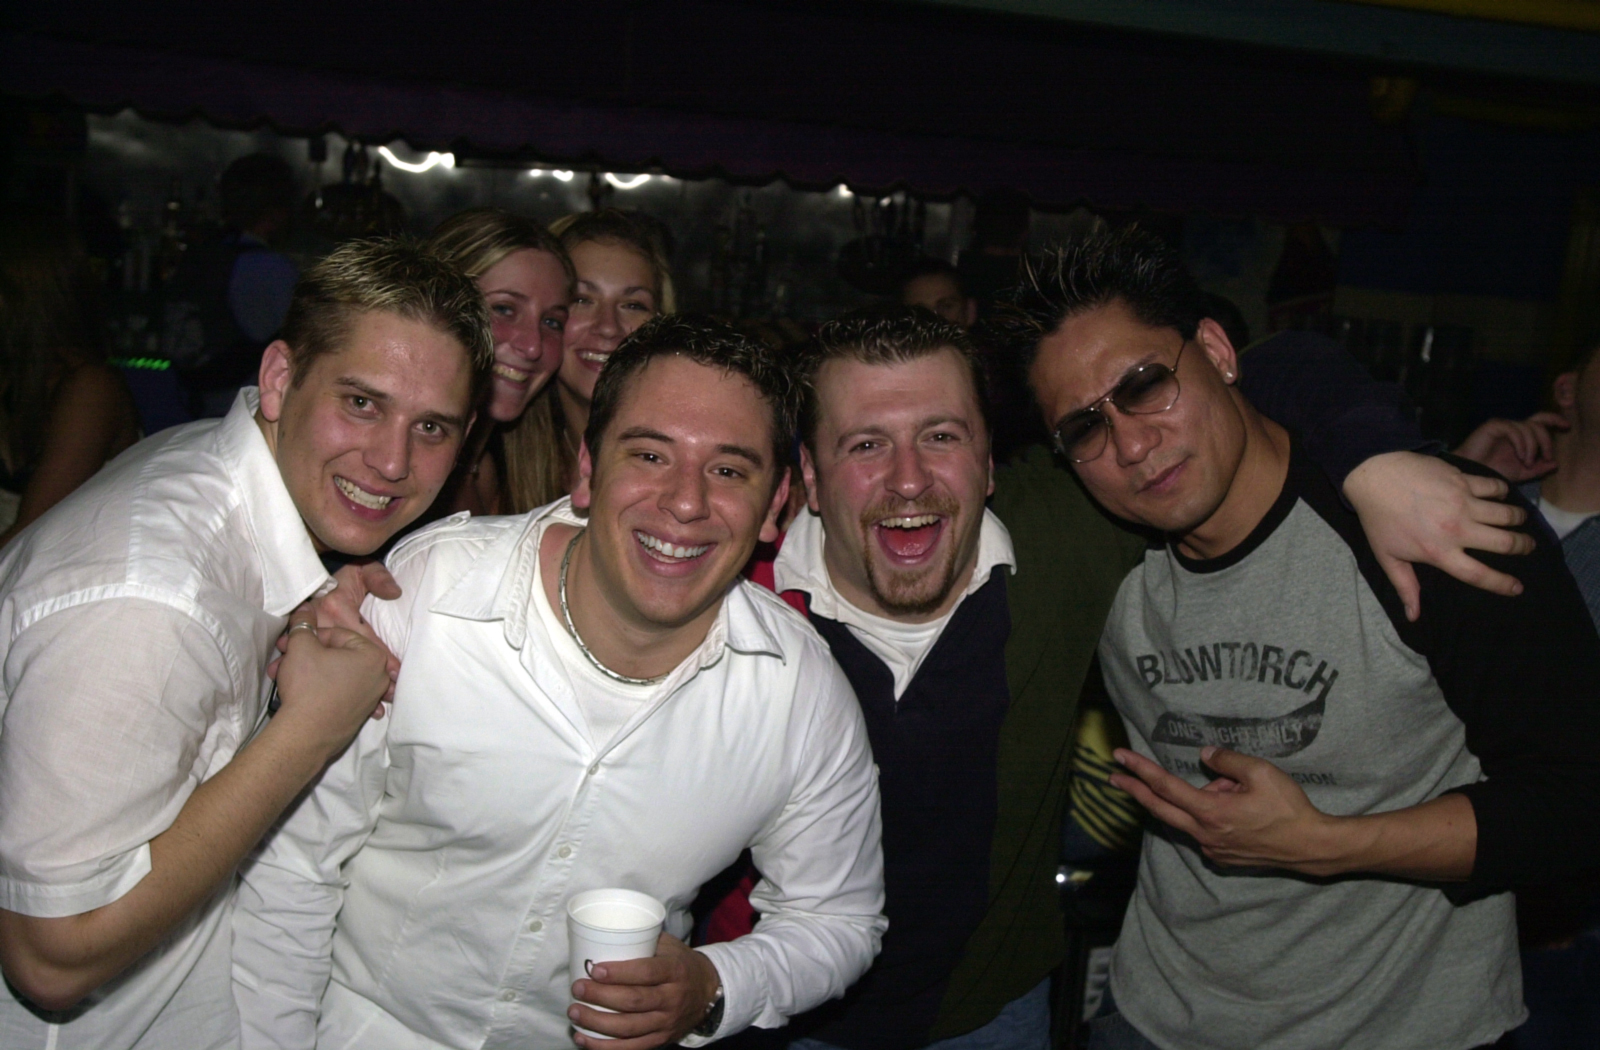 Erik, Me, DJ Mike Z, DJ Speed and college girls :)